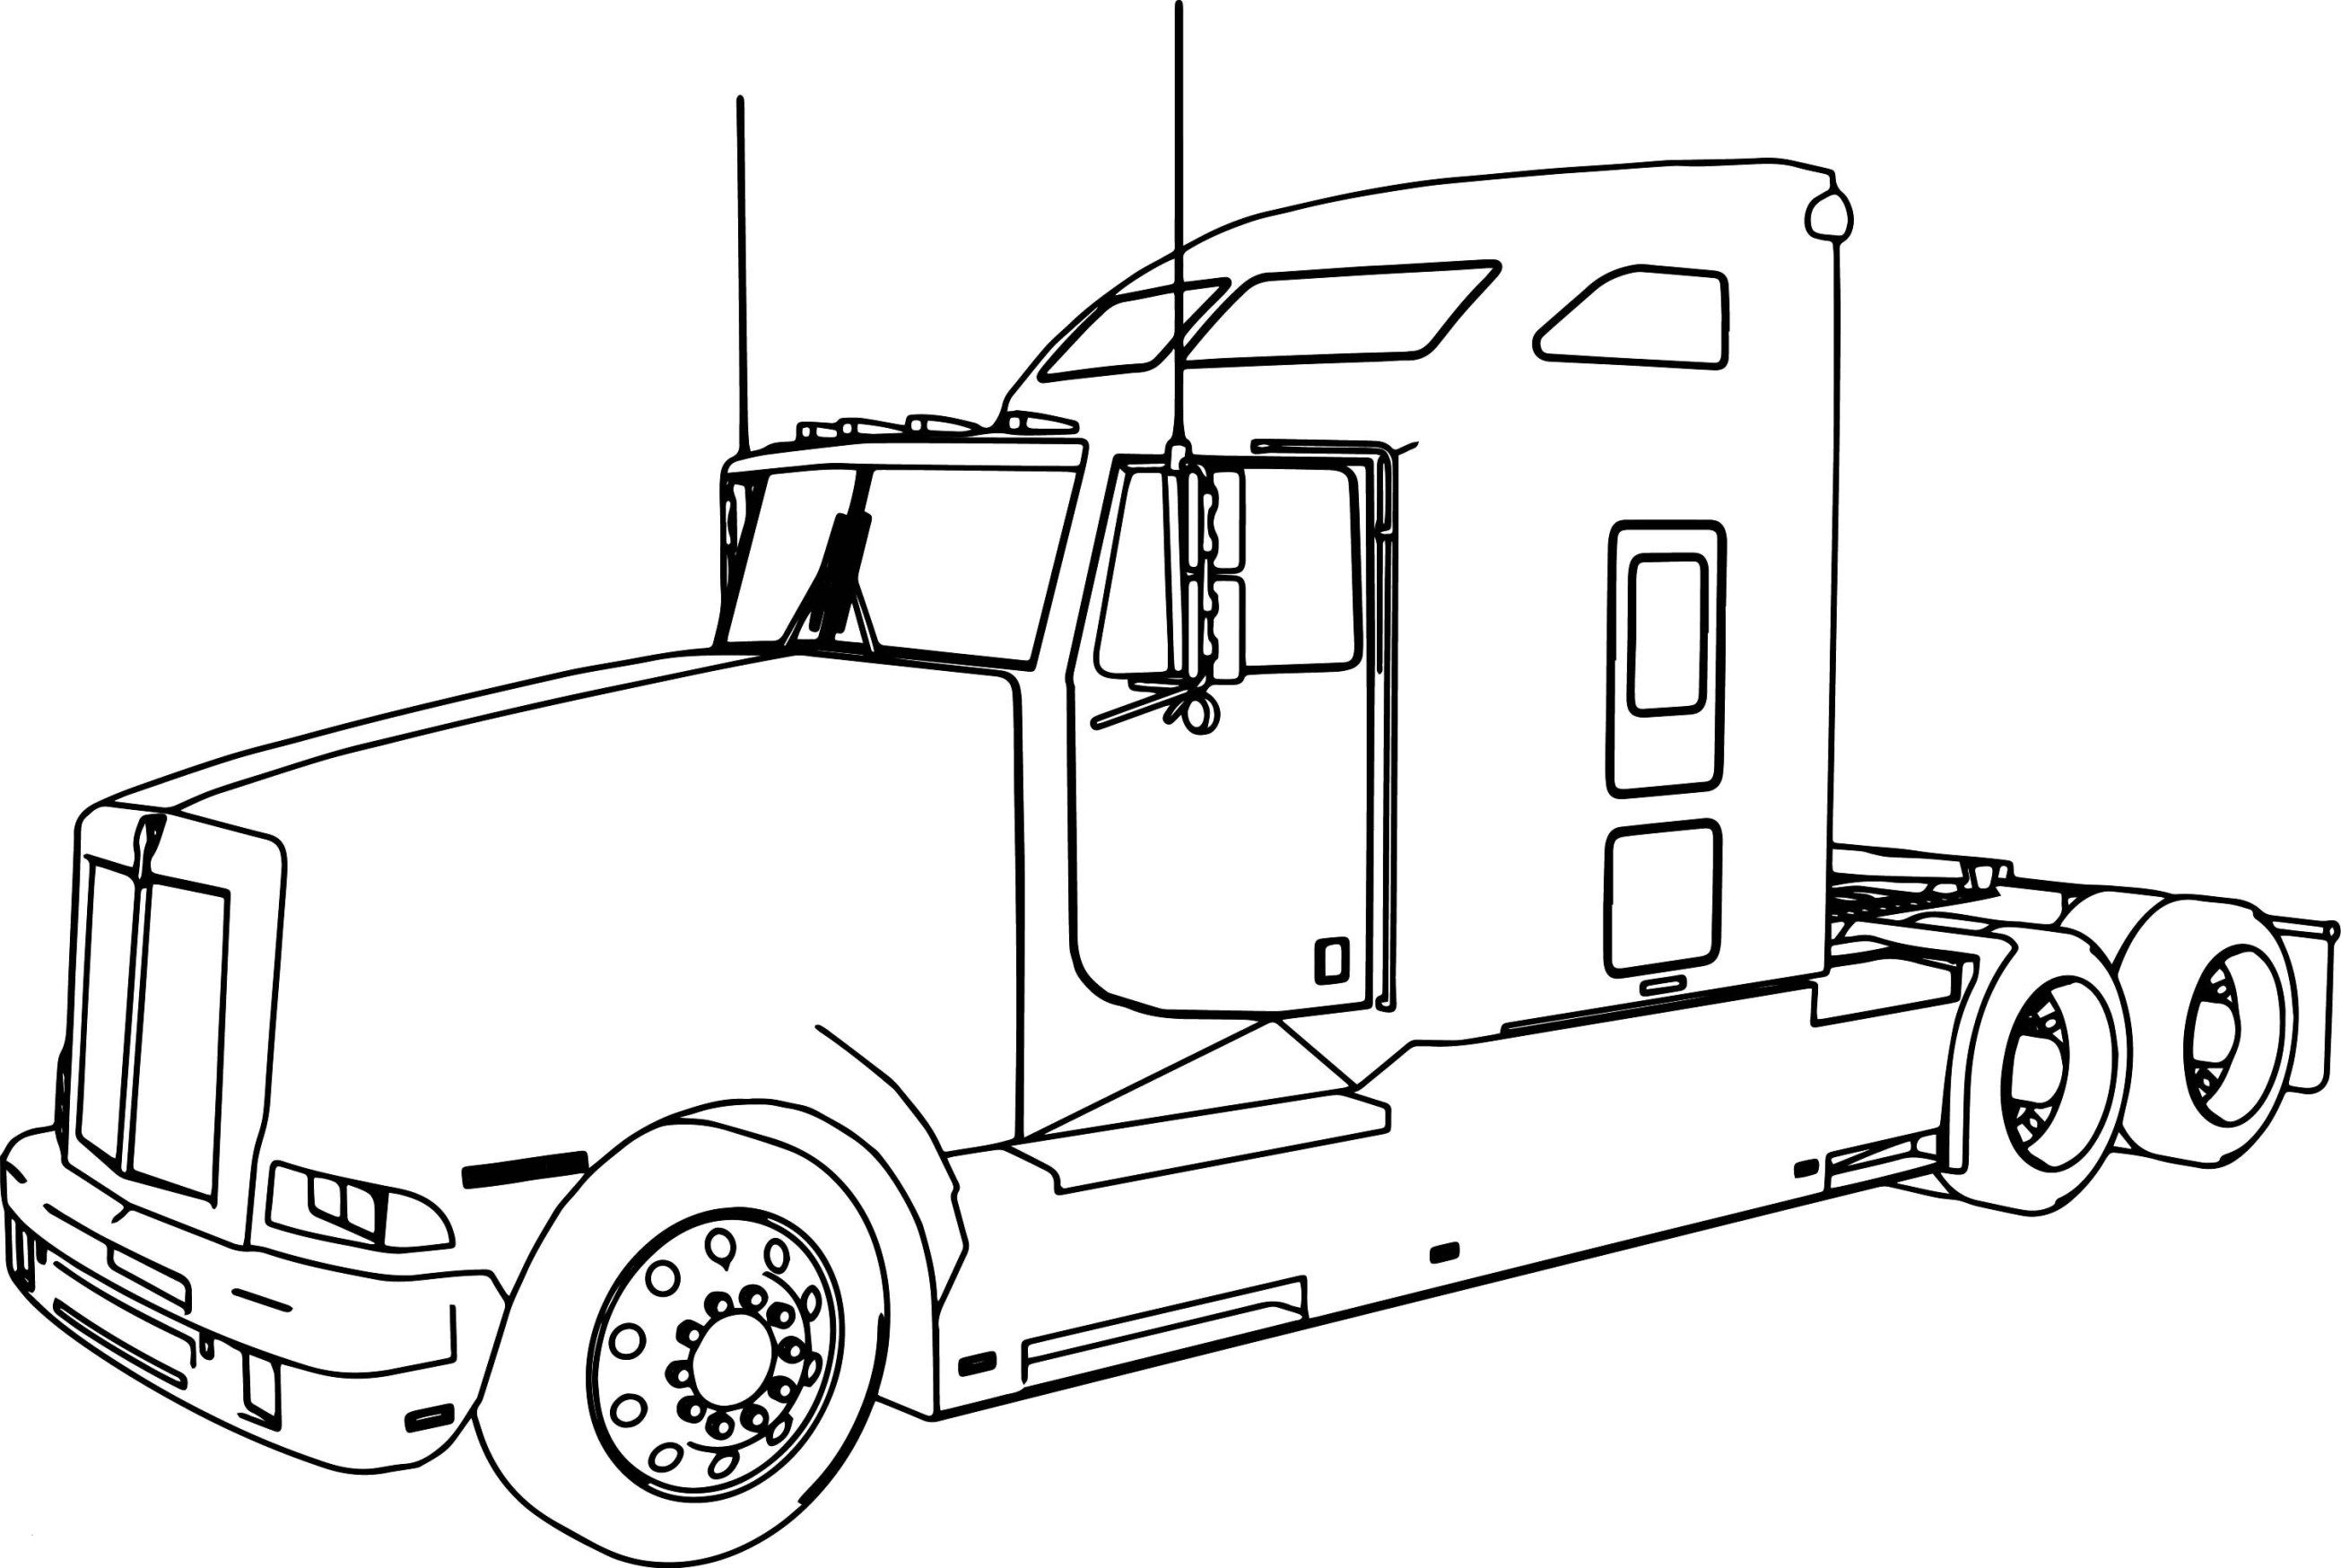 Semi Truck Coloring Pages Semi Truck Coloring Pages Best Of Gallery Truck Coloring Book Semi Davemelillo Com Truck Coloring Pages Tractor Coloring Pages Semi Trucks